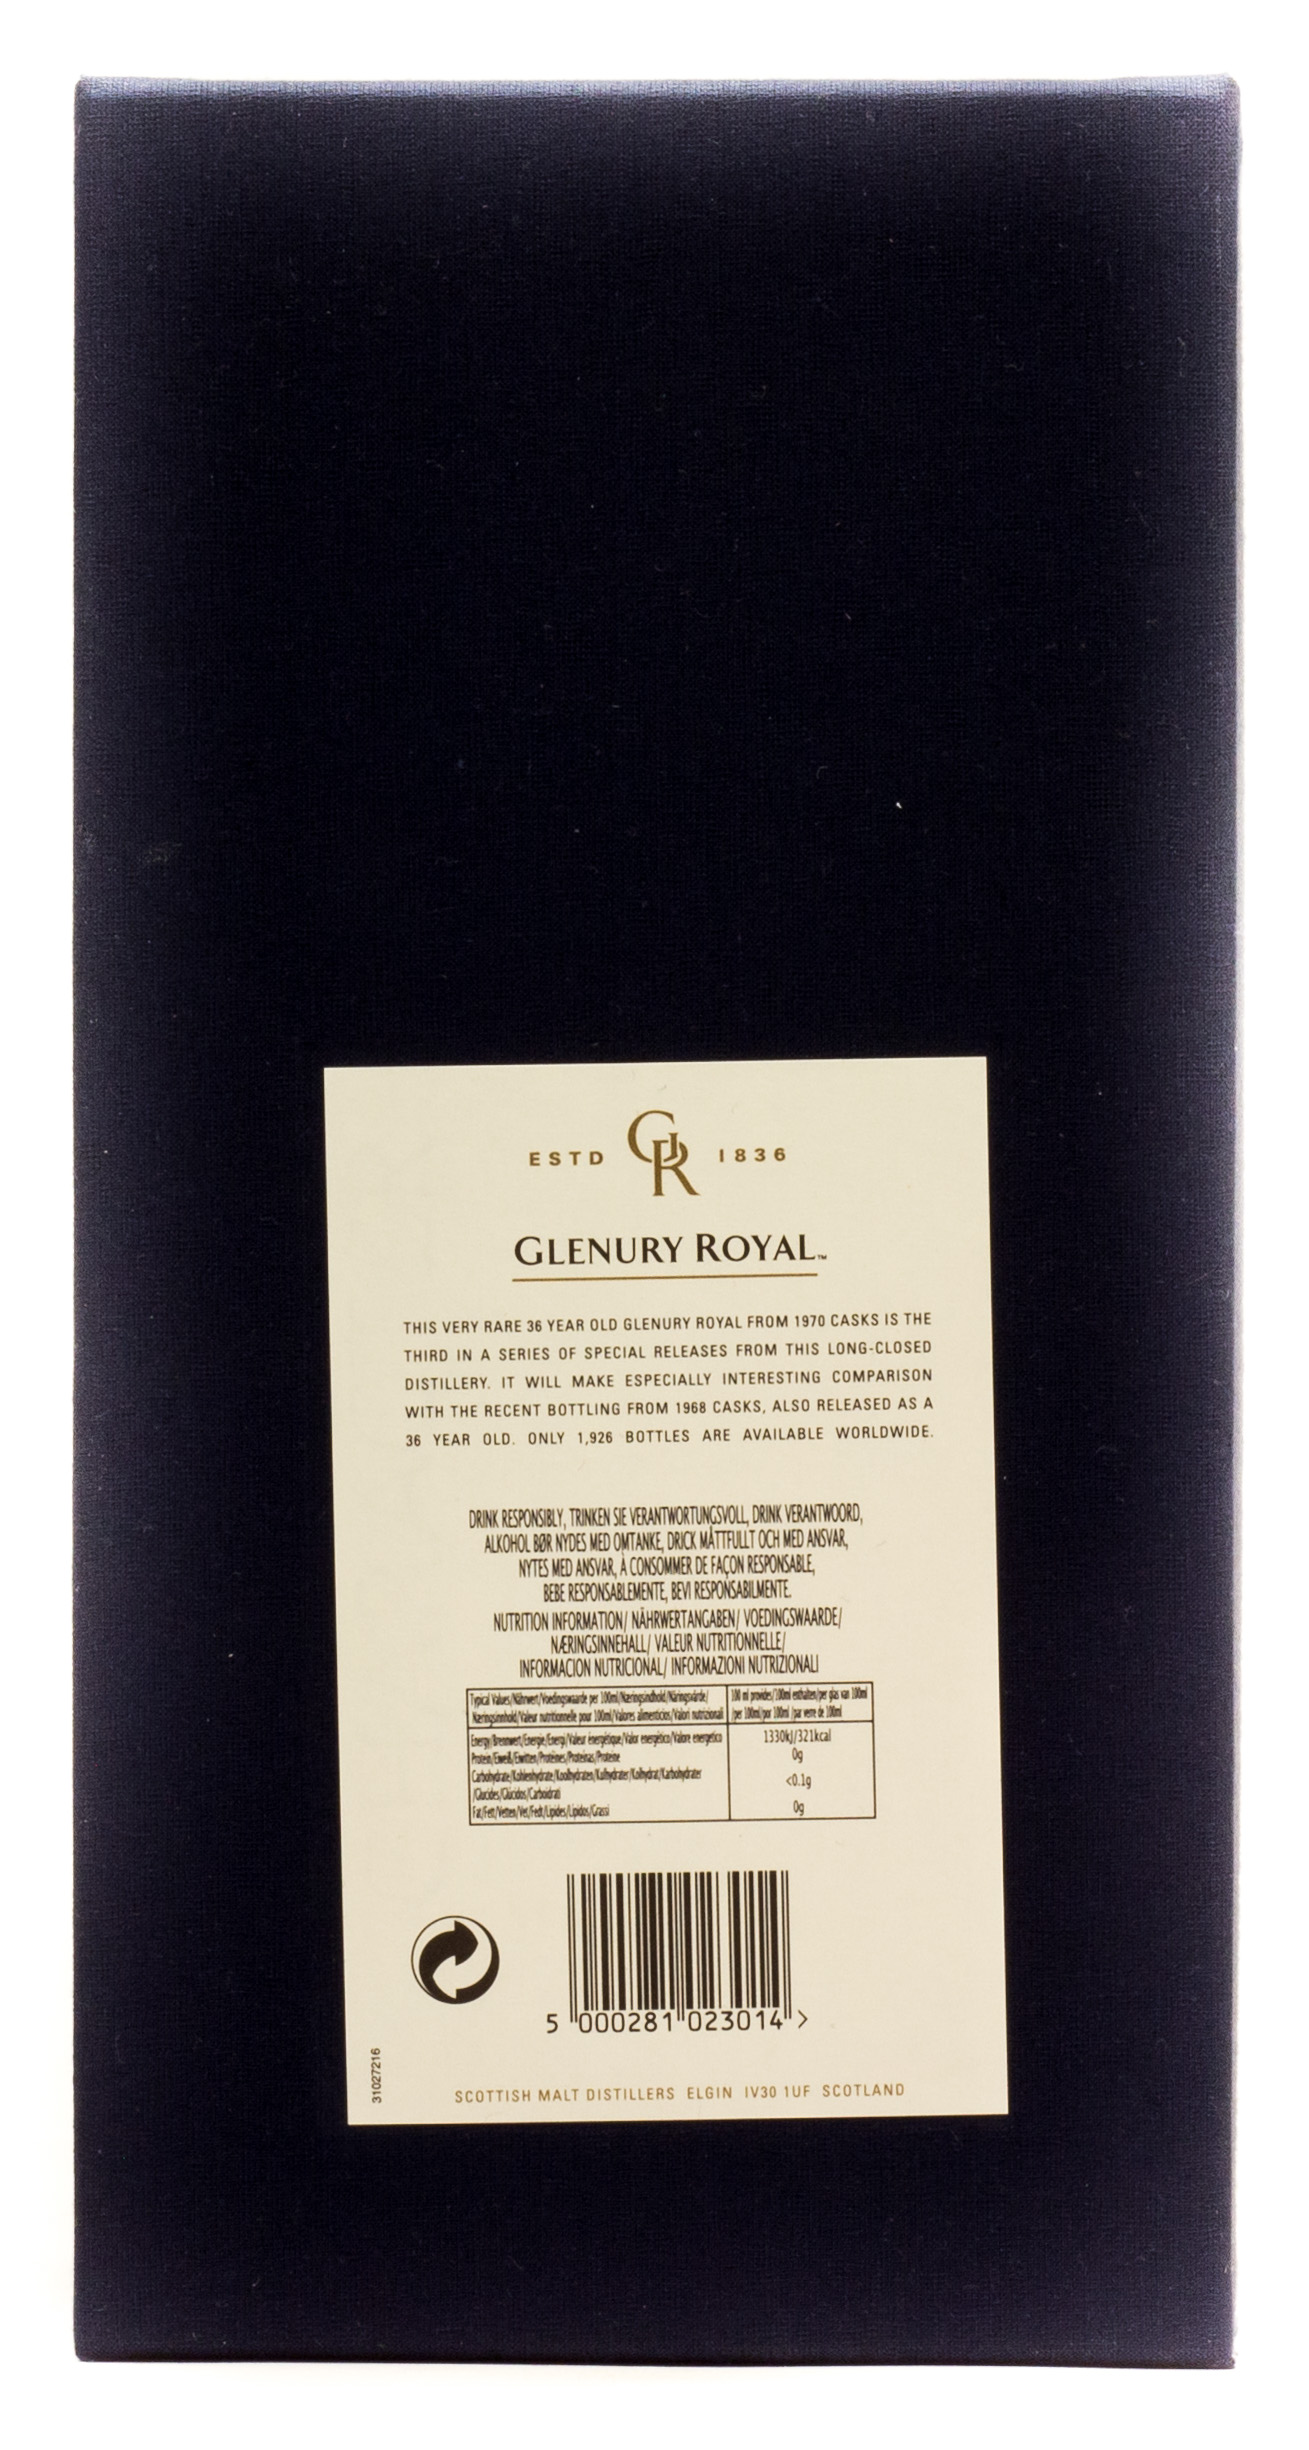 Glenury Royal Highland Single Malt Scotch Whisky 0,7 l